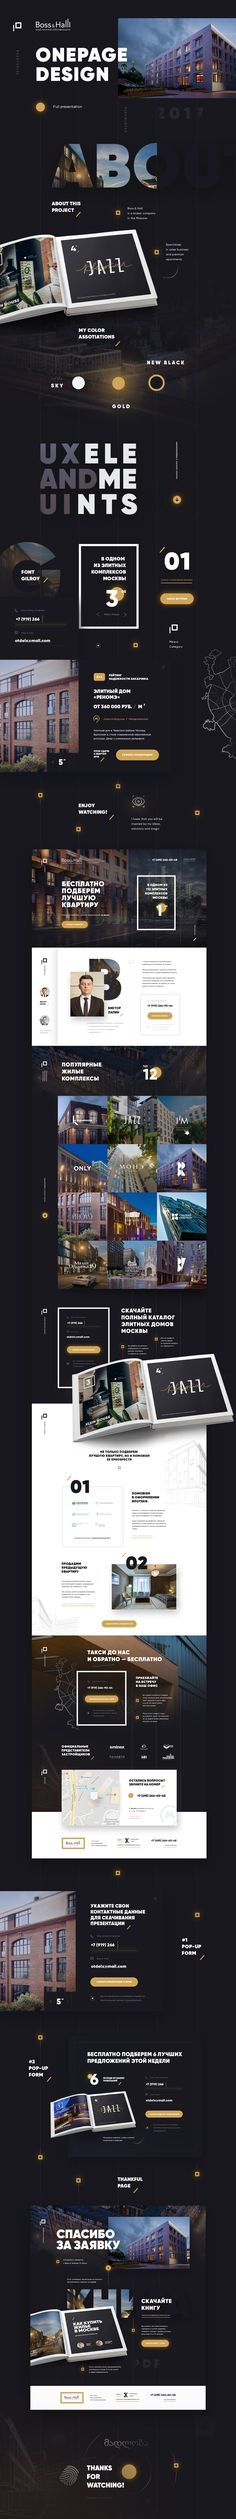 BOSS & HALL — Apartments estate landing page website on Behance